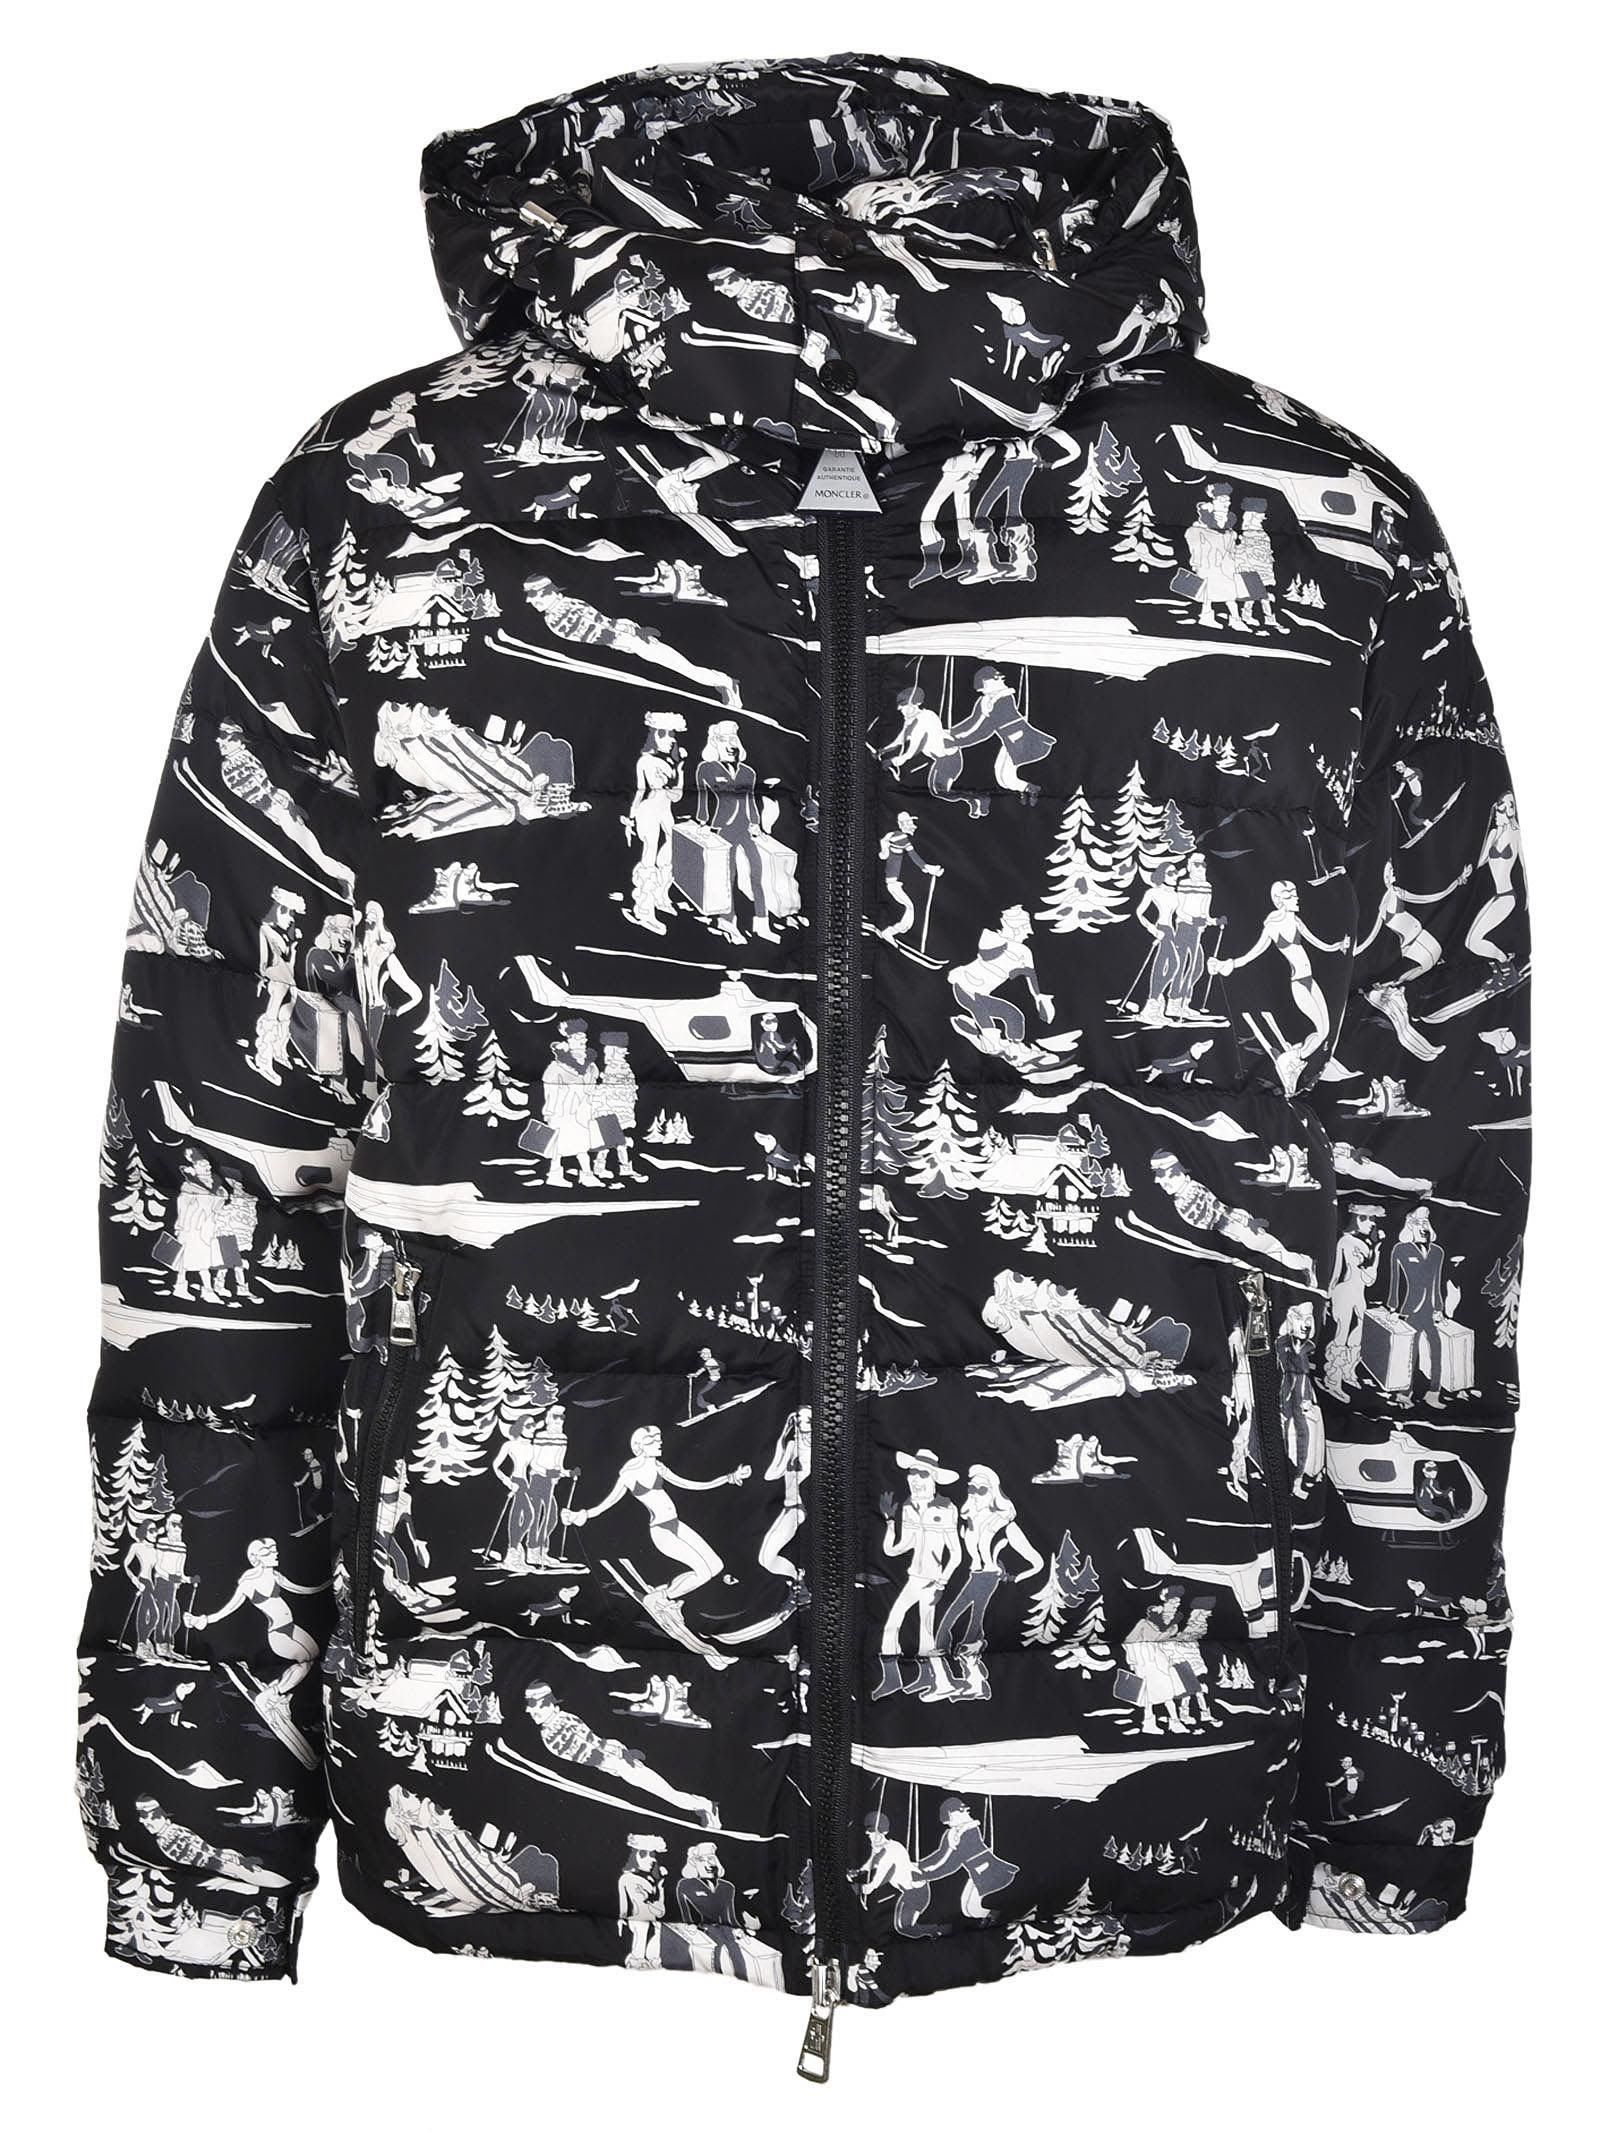 Piumino Uomo Moncler Arcy Stampa Montagna In 999 Down